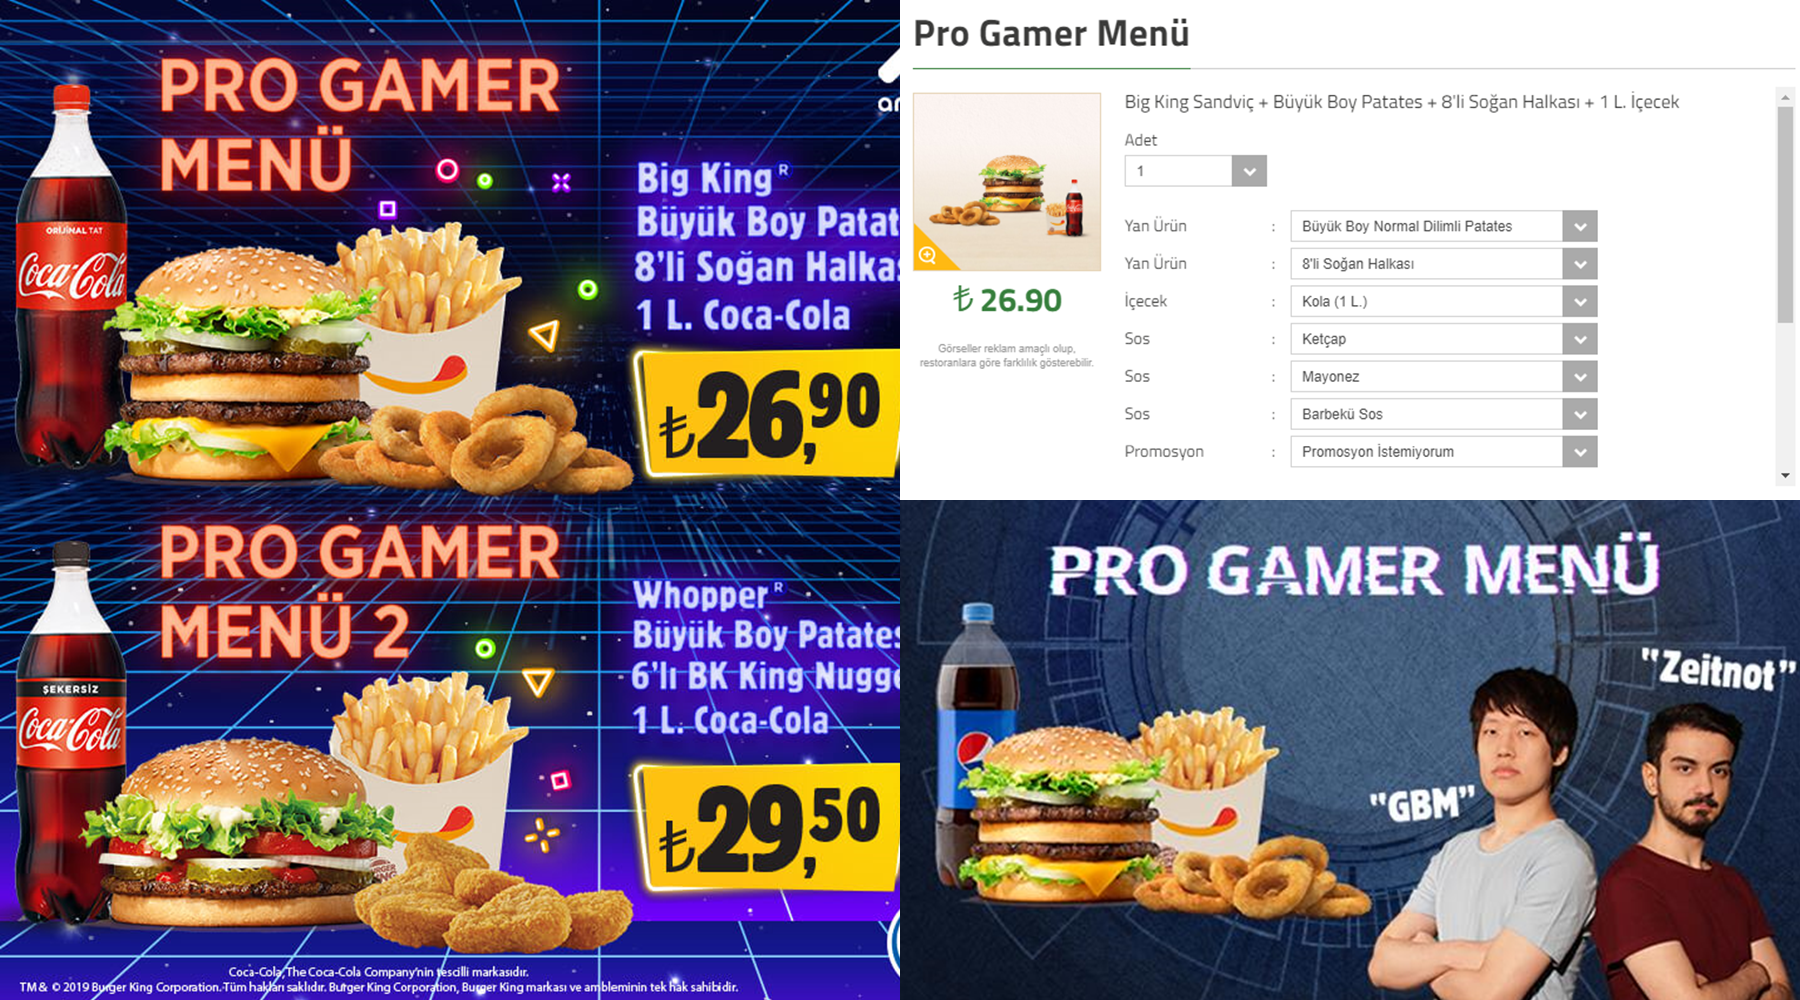 Burger King Pro Gamer Menü